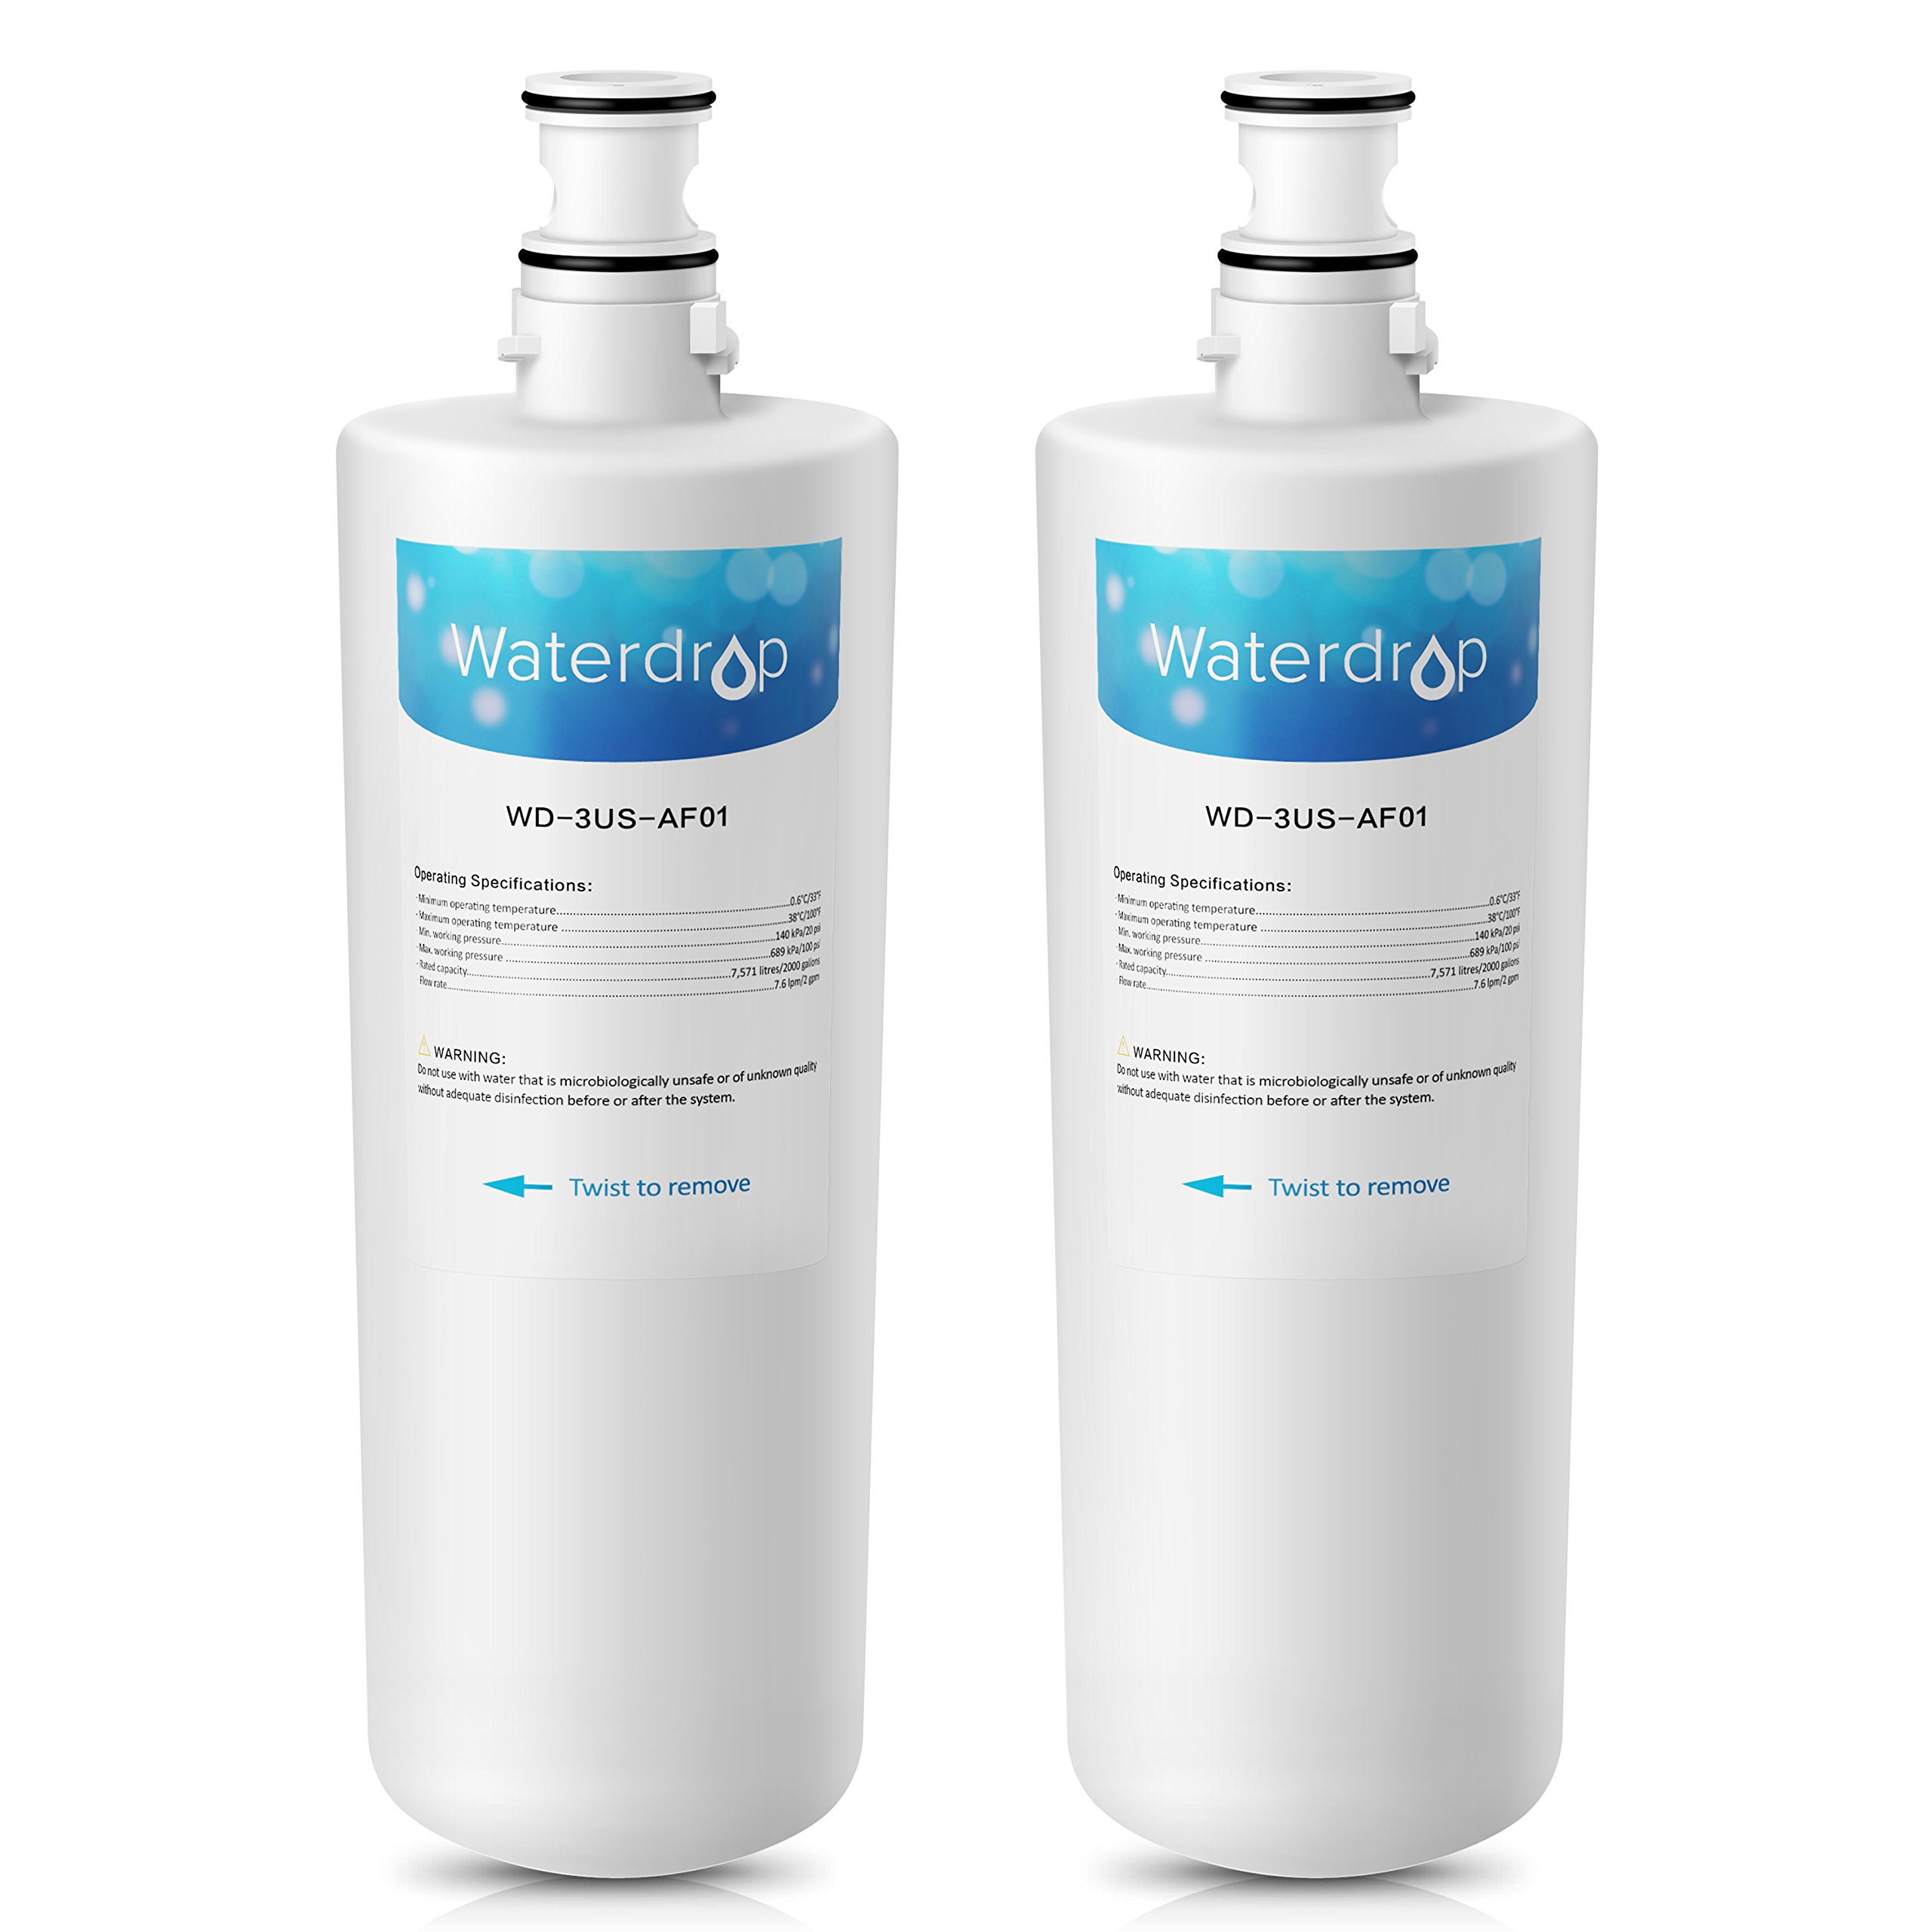 Waterdrop 3US-AF01 Replacement Undersink Water Filter, Compatible with Standard Filtrete 3US-AF01, 3US-AS01, Whirlpool WHCF-SRC, WHCF-SUFC, WHCF-SUF (2 Pack)